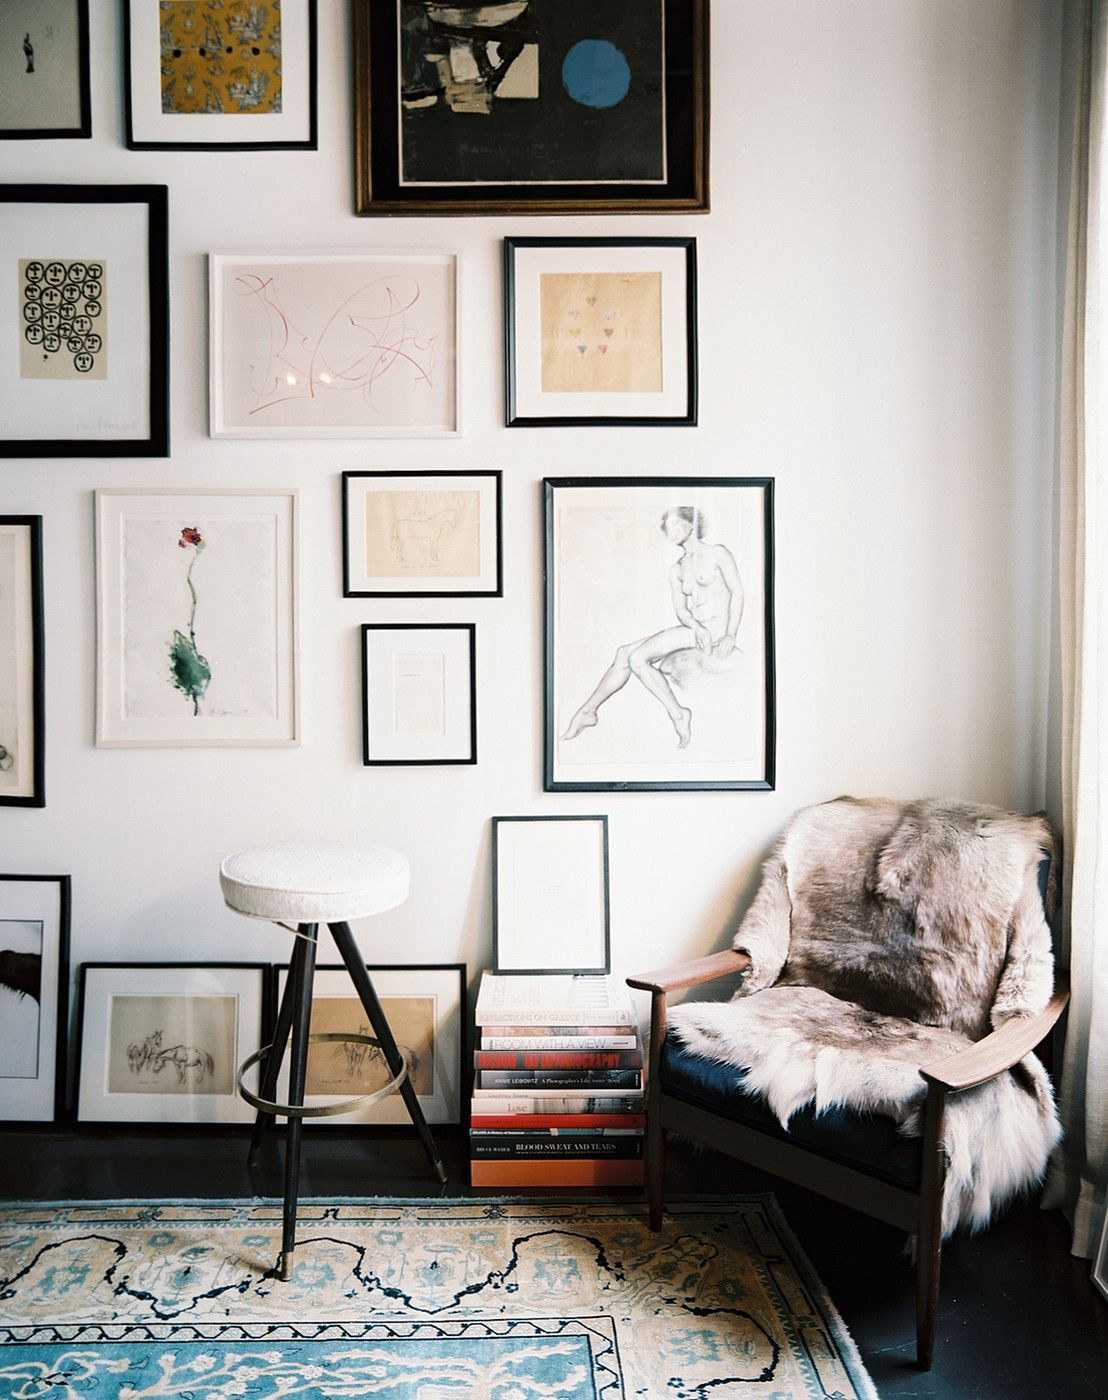 Nesting corner armchairs cozy and gallery wall